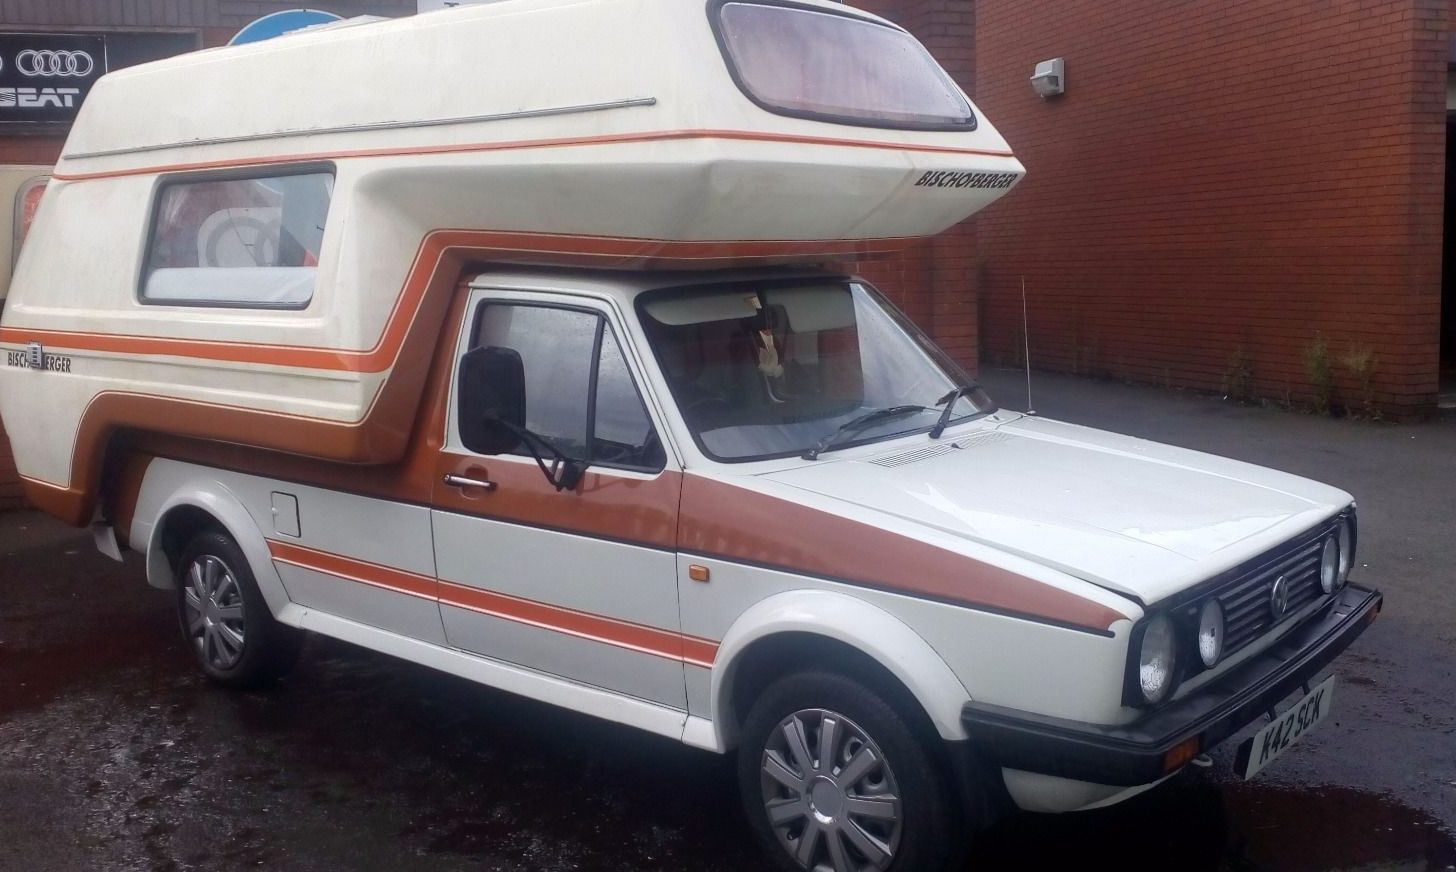 Not a Dolphin: VW Bishcofberger Camper